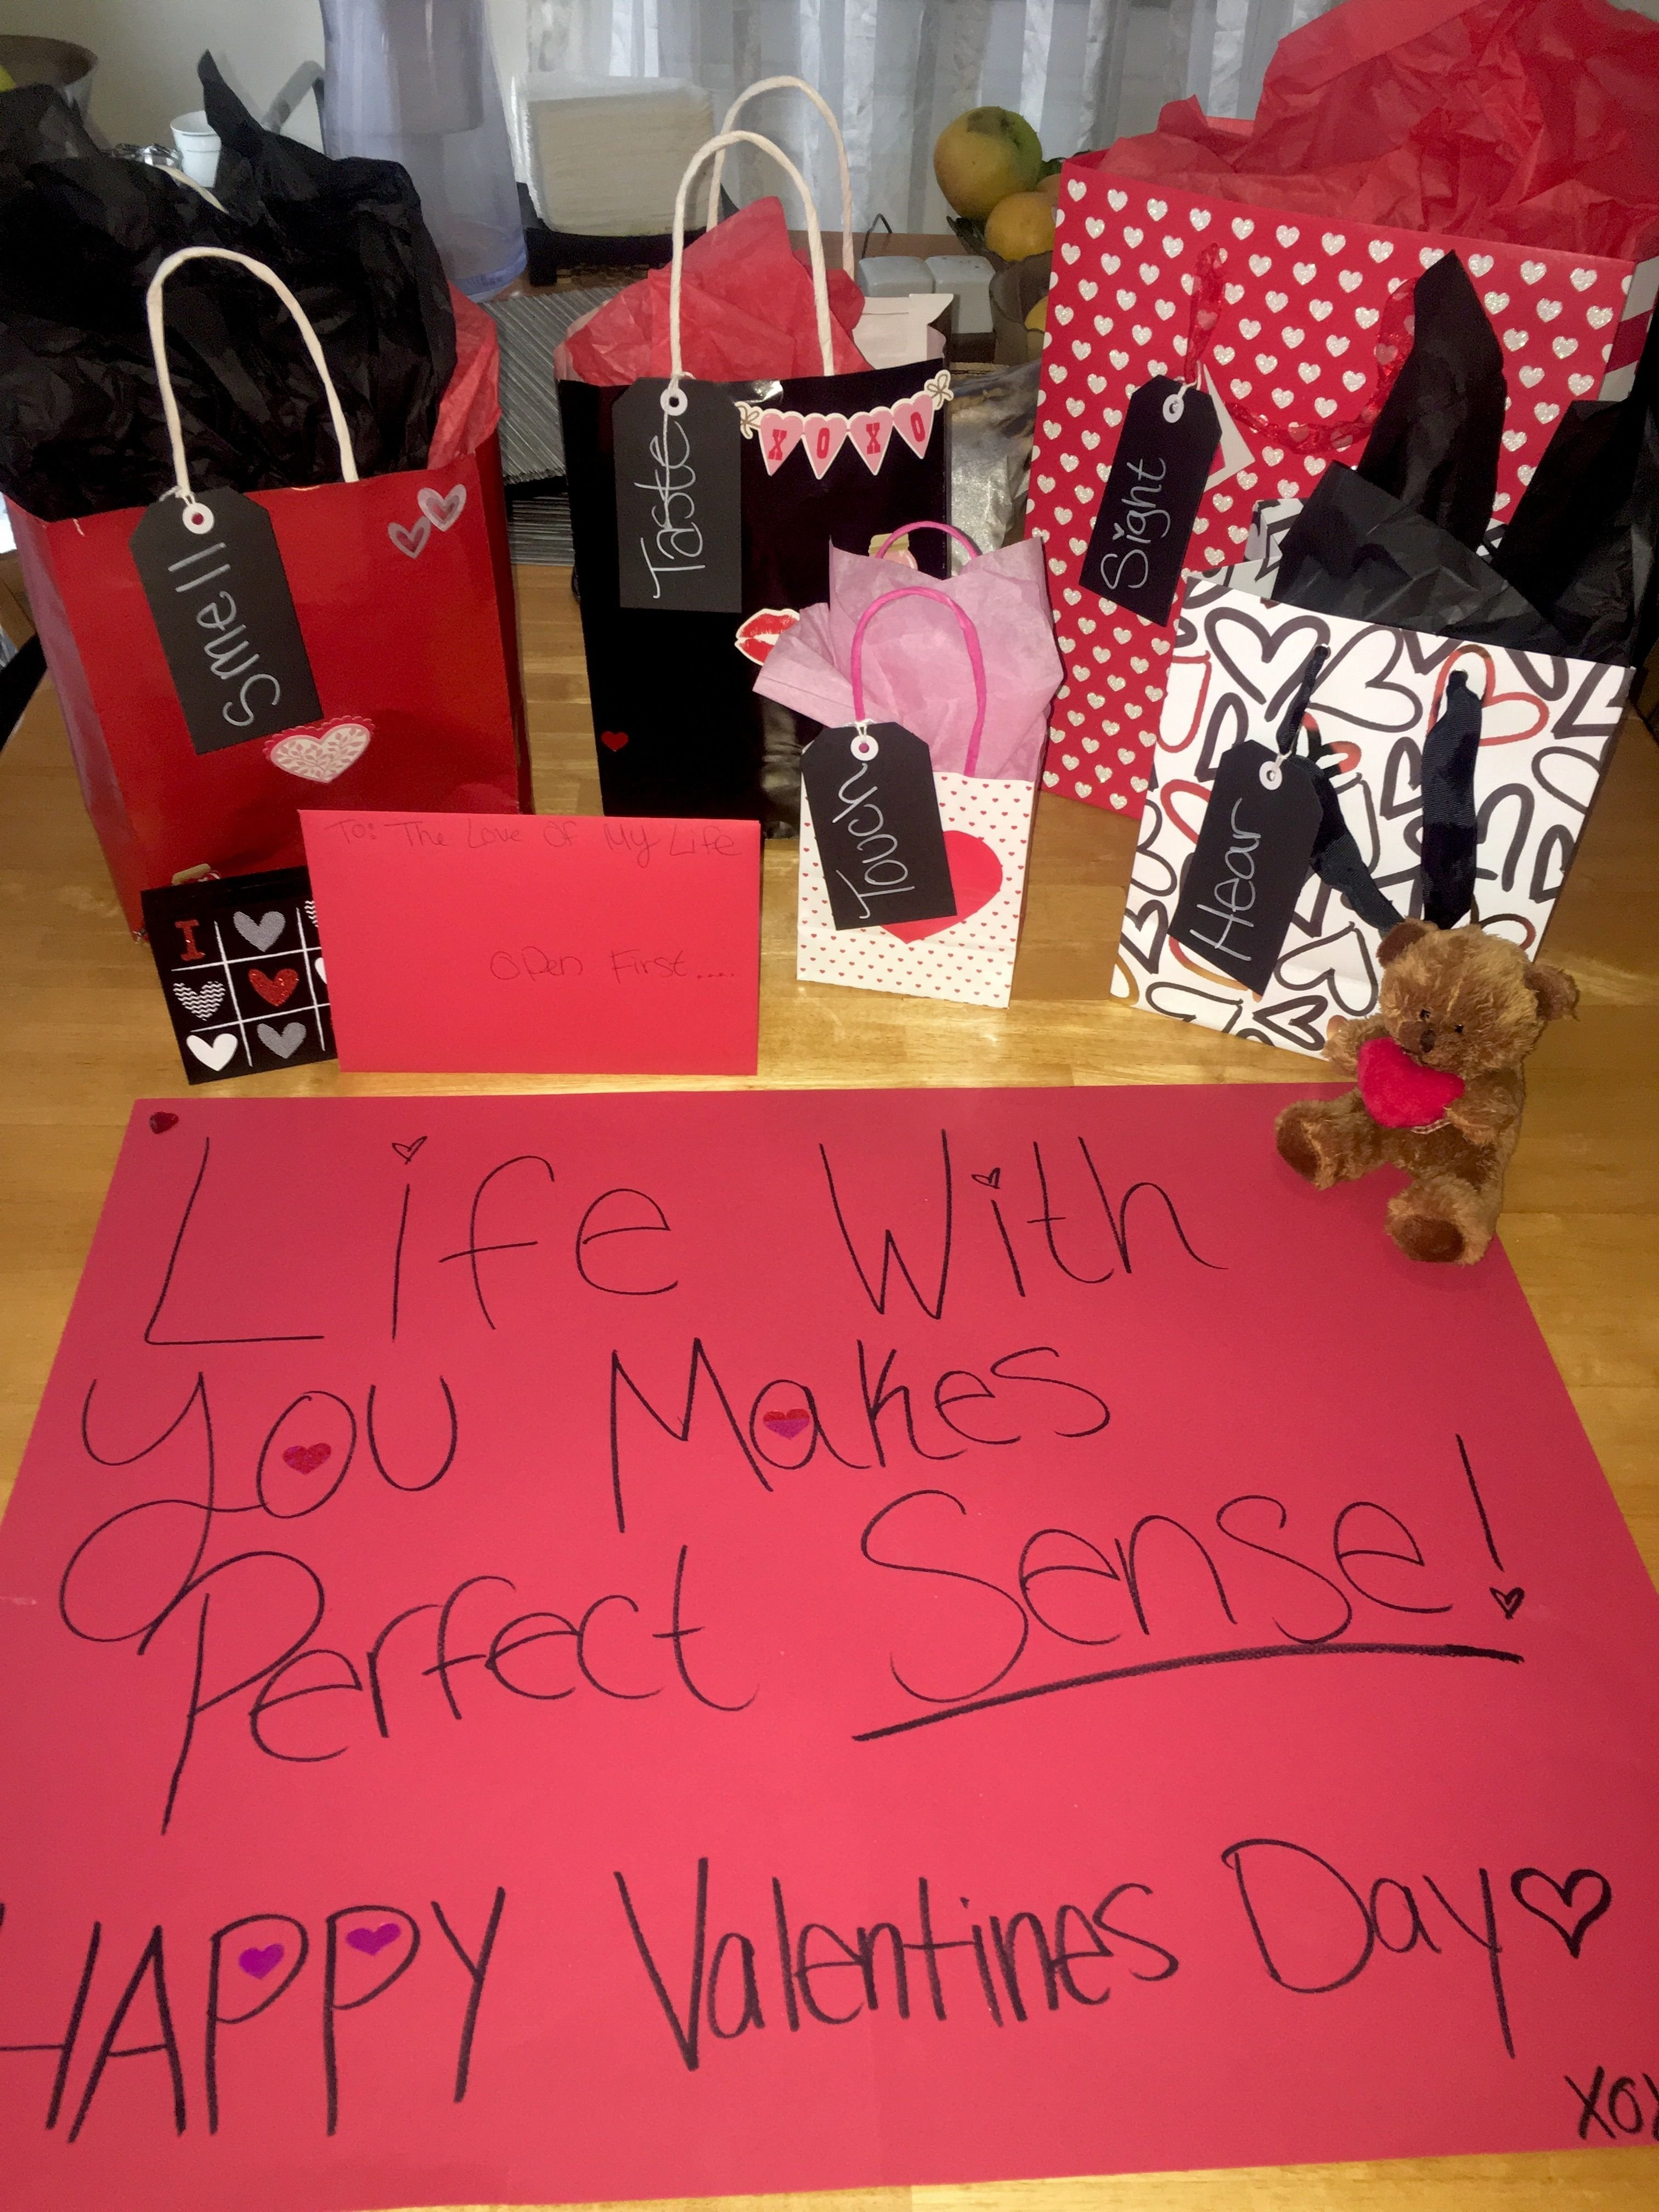 10 Fashionable Ideas For Boyfriend For Valentines Day 5 senses gift for him happy valentines day babee299a5 diys 1 2021